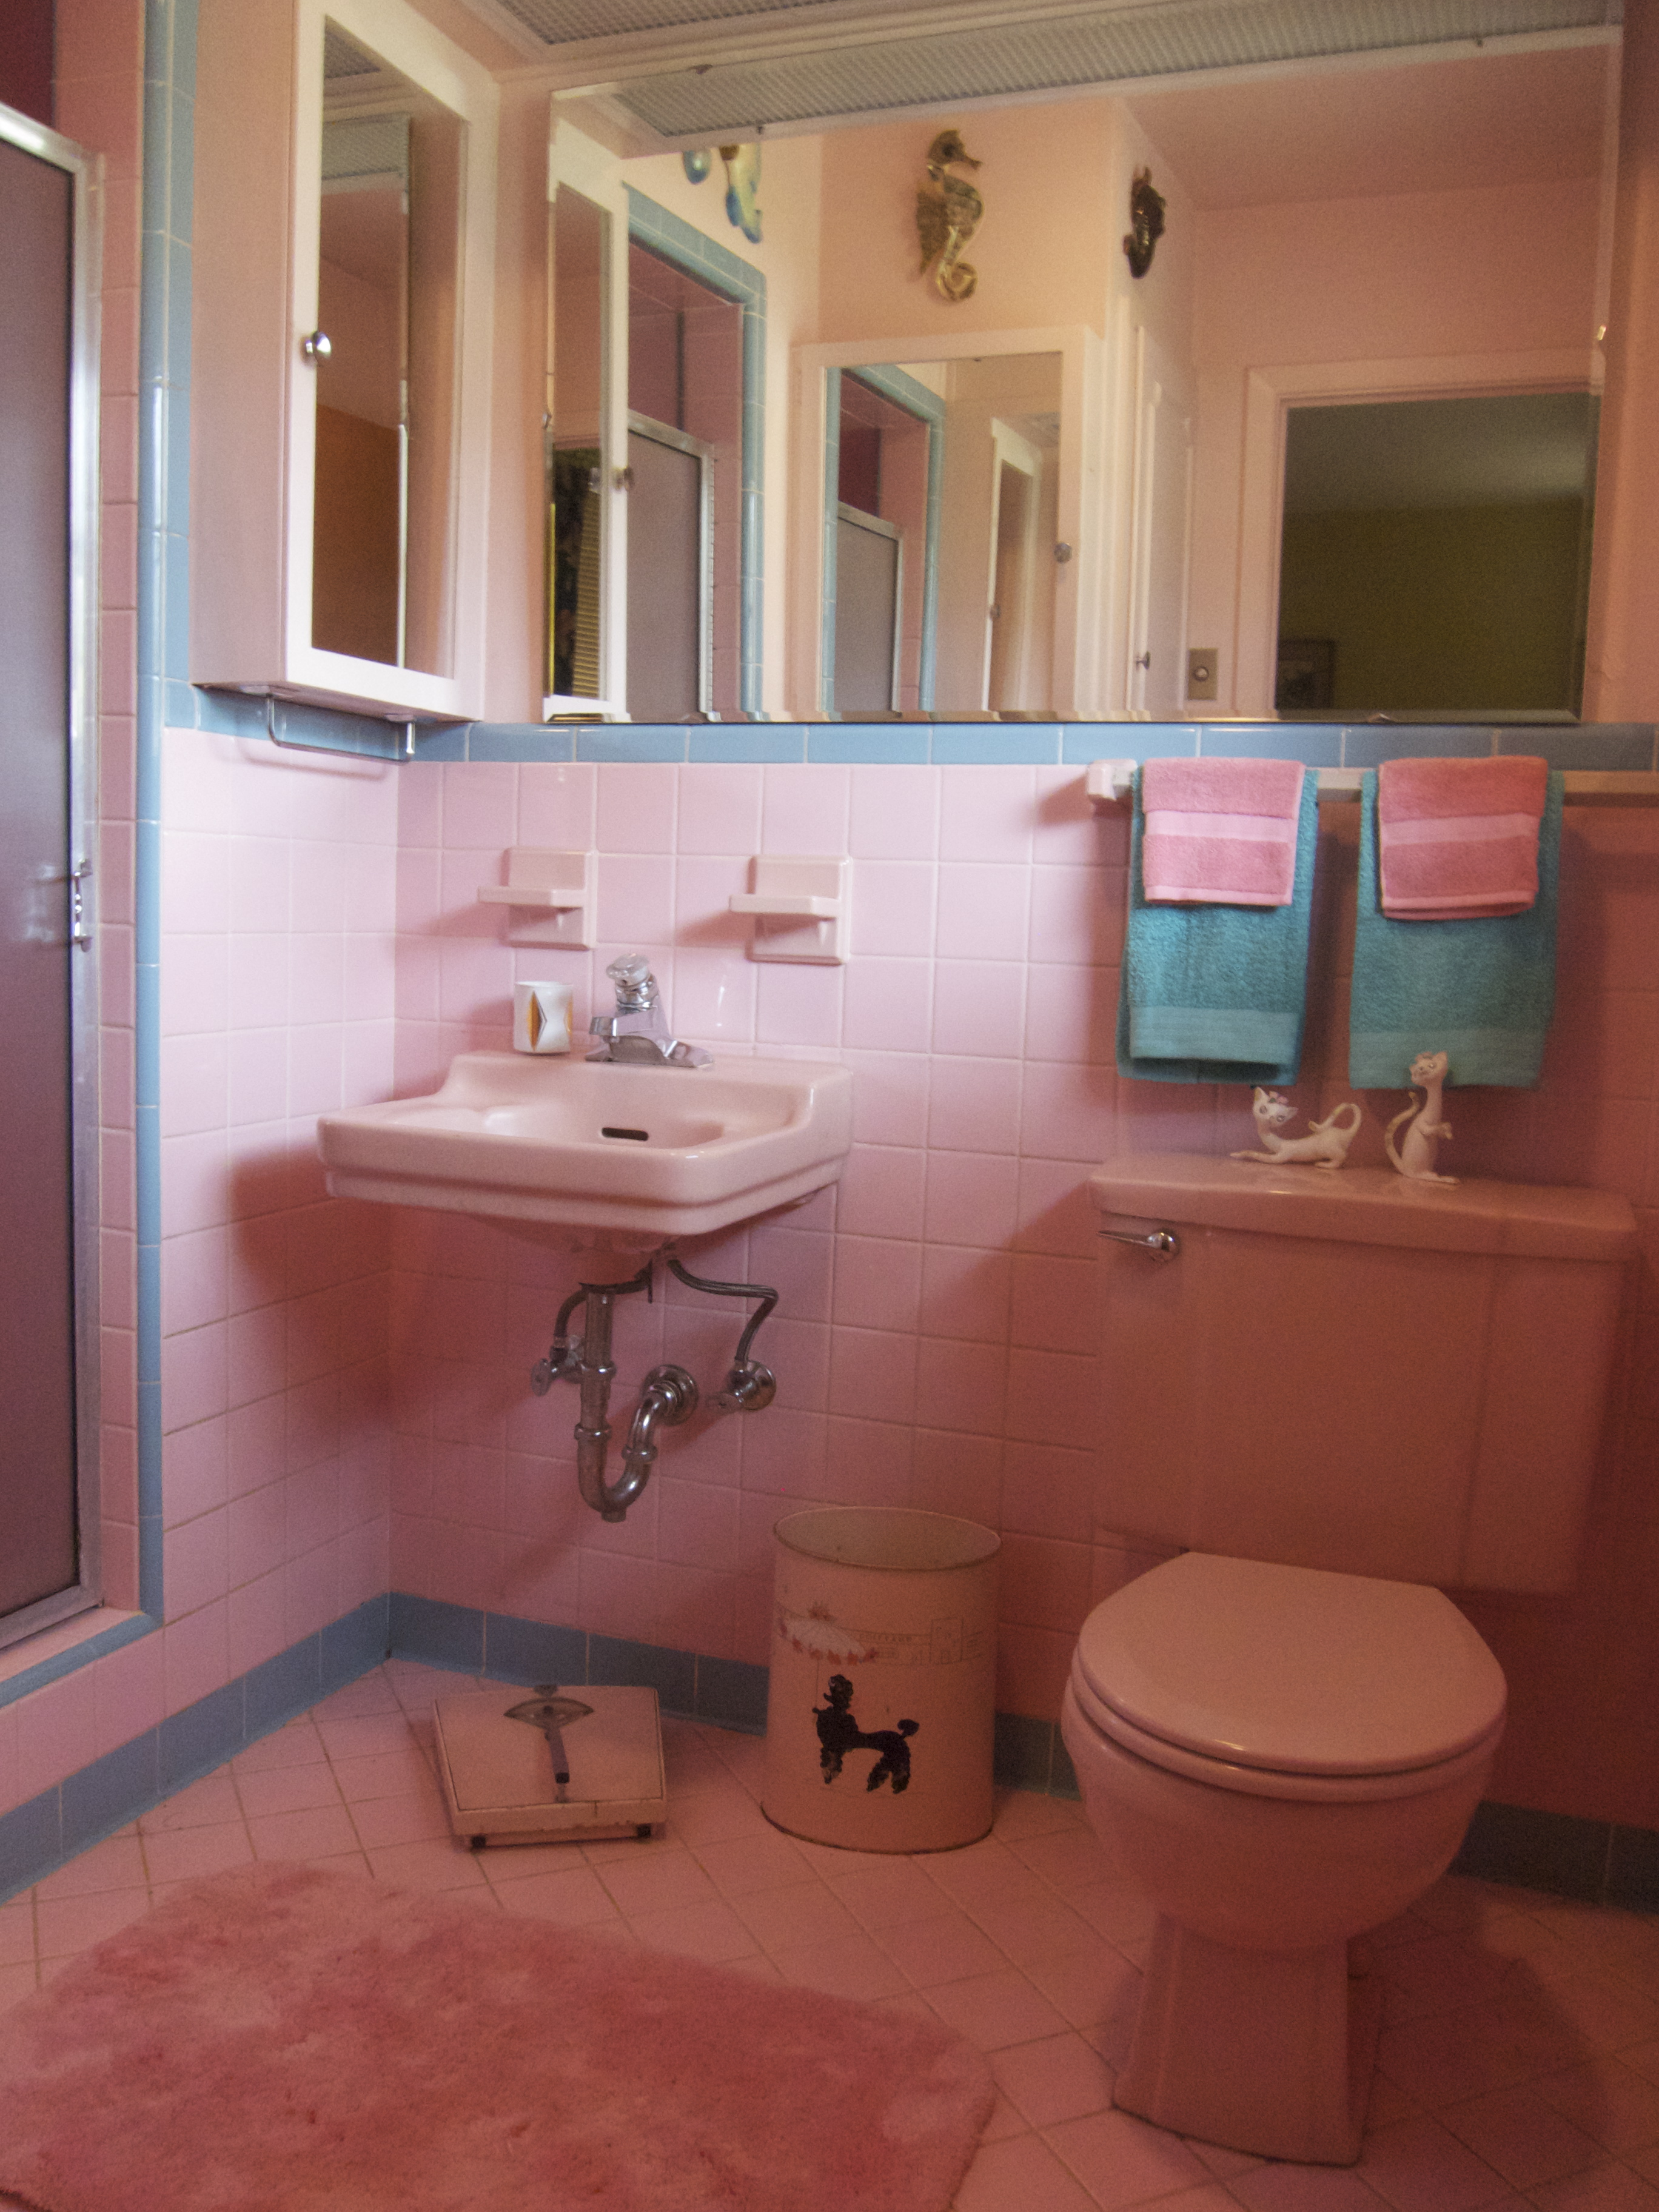 One more pink bathroom saved betty crafter